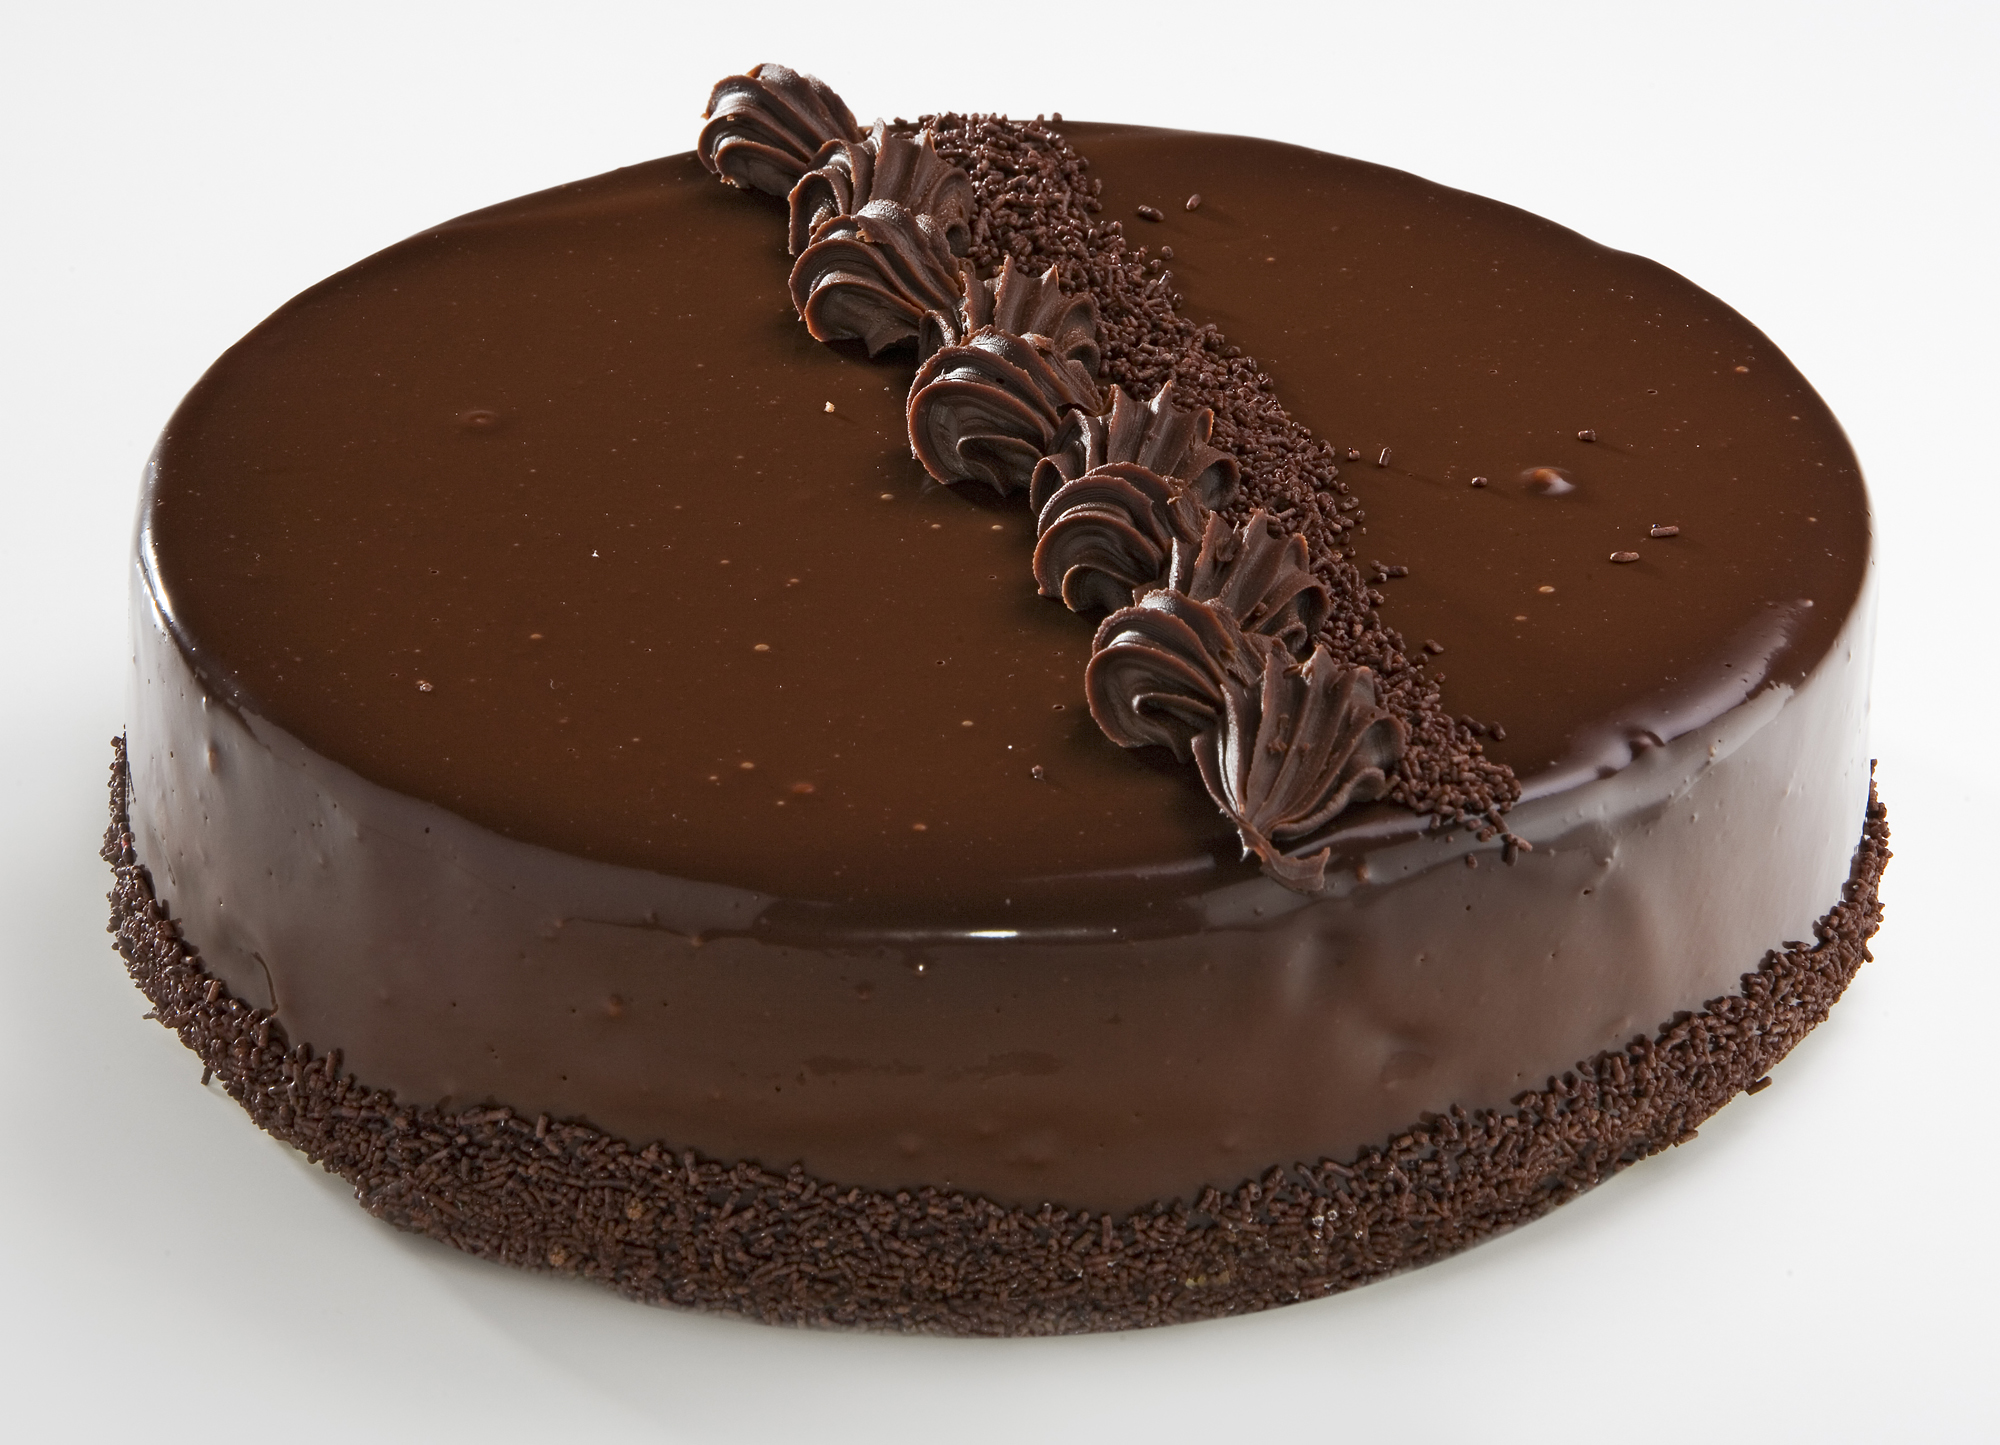 Images Of Chocolate Cake : Chocolate - Chocolate Photo (30423745) - Fanpop